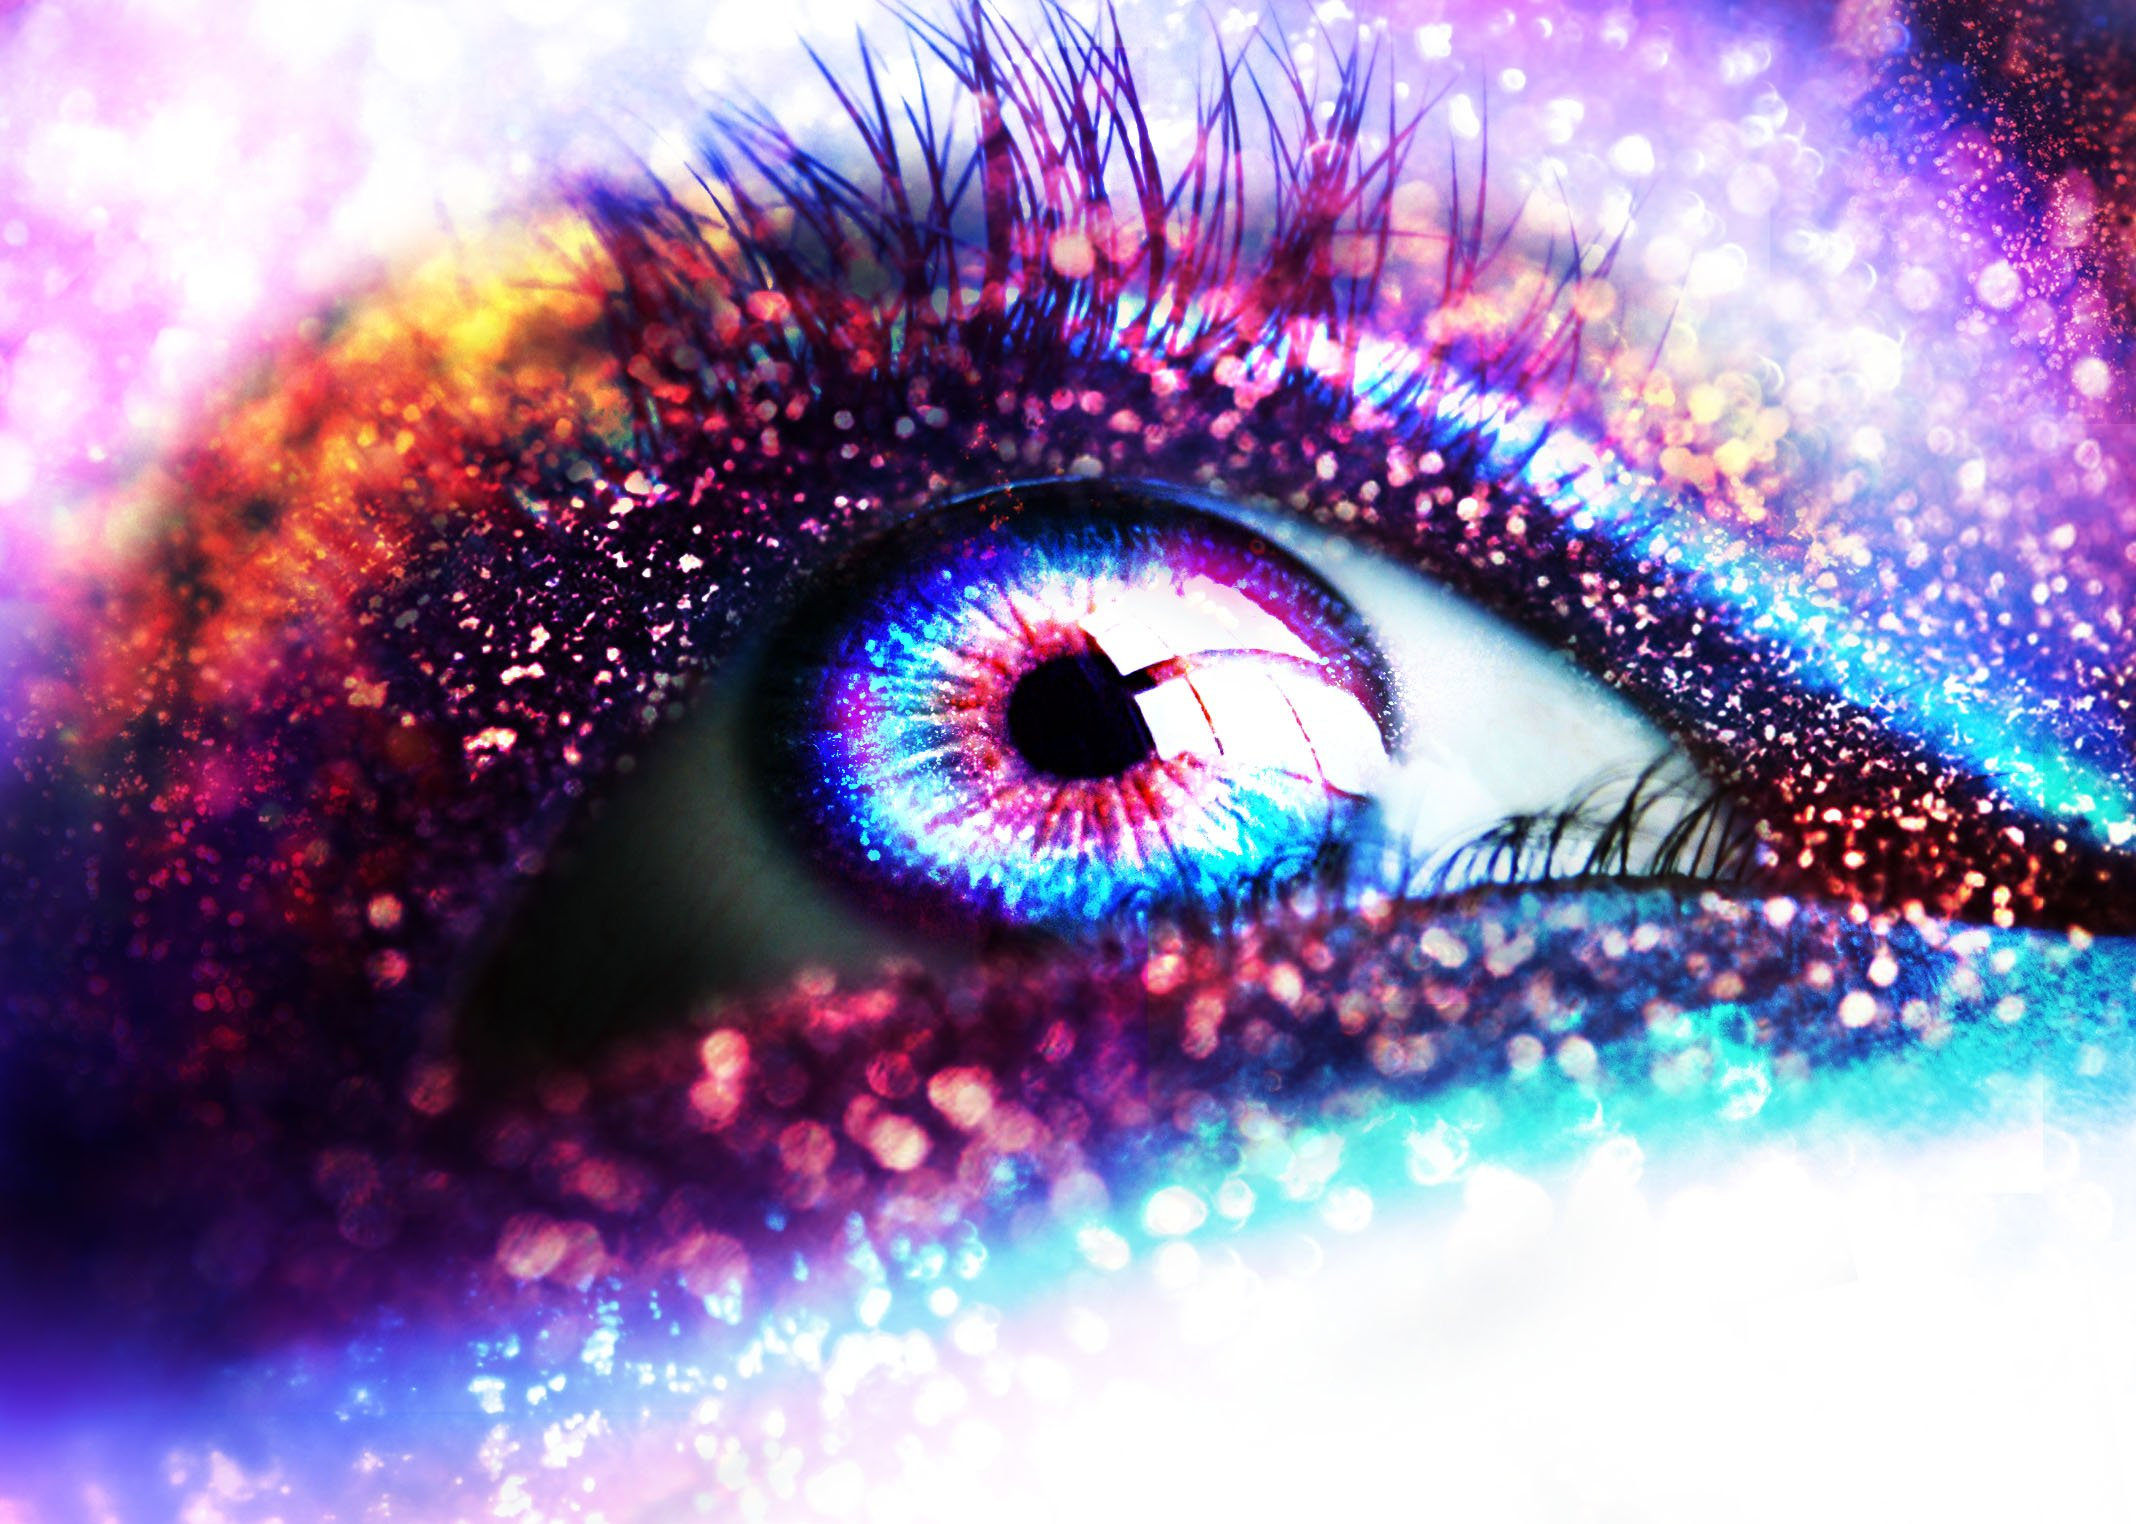 glitter sparkle psychedelic abstract abstraction bokeh eyes eye 2136x1524